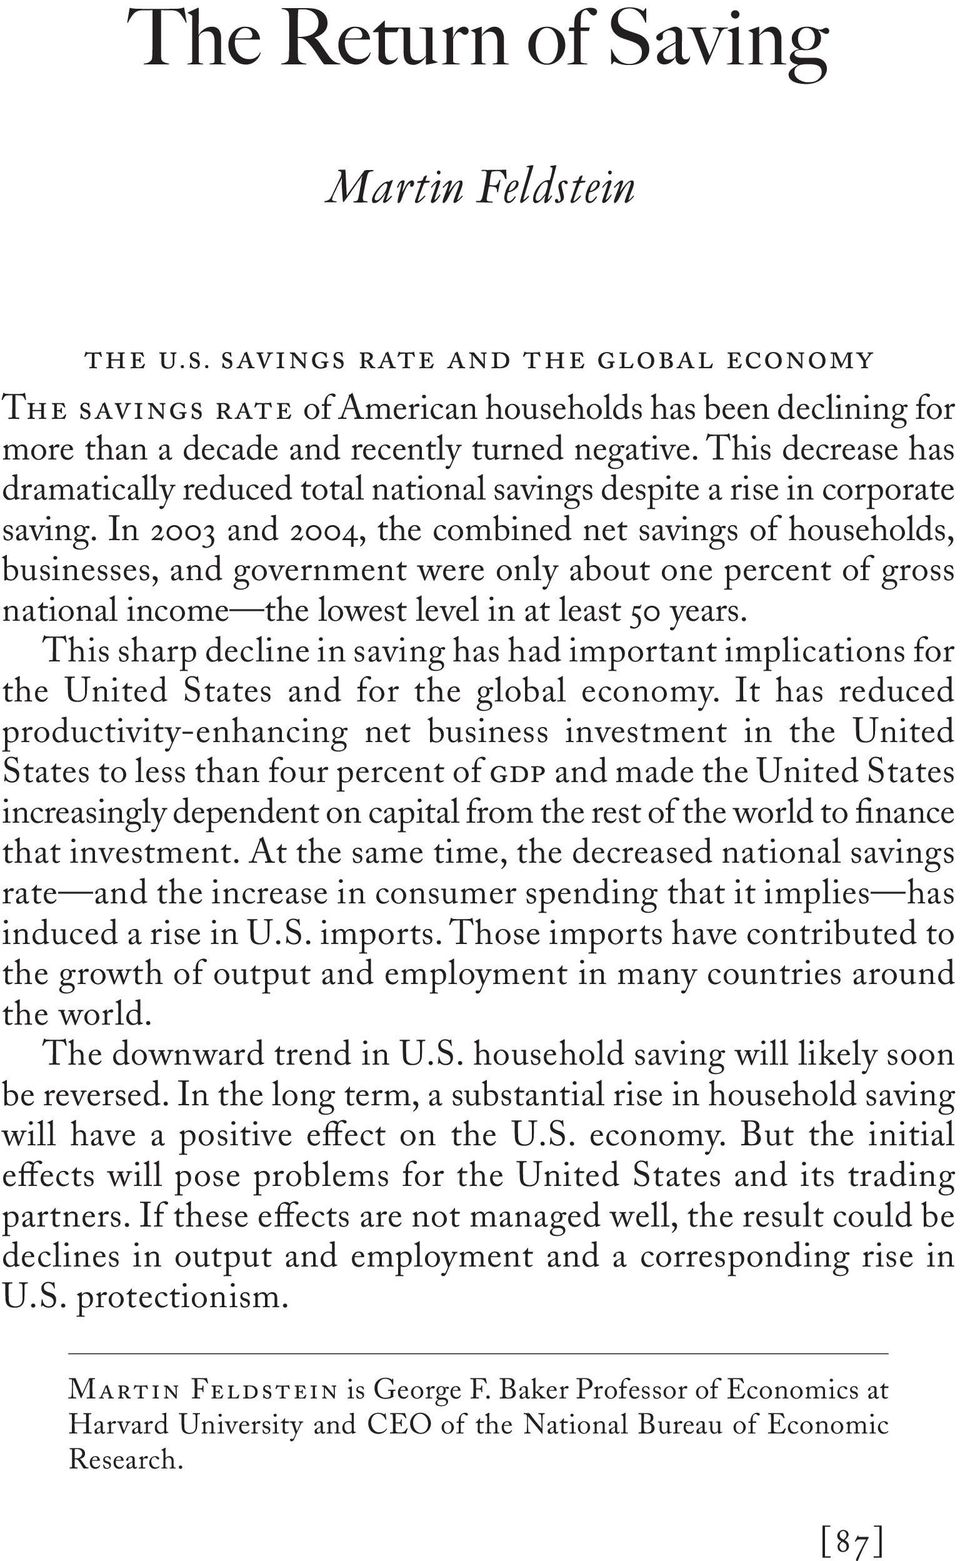 In 2003 and 2004, the combined net savings of households, businesses, and government were only about one percent of gross national income the lowest level in at least 50 years.